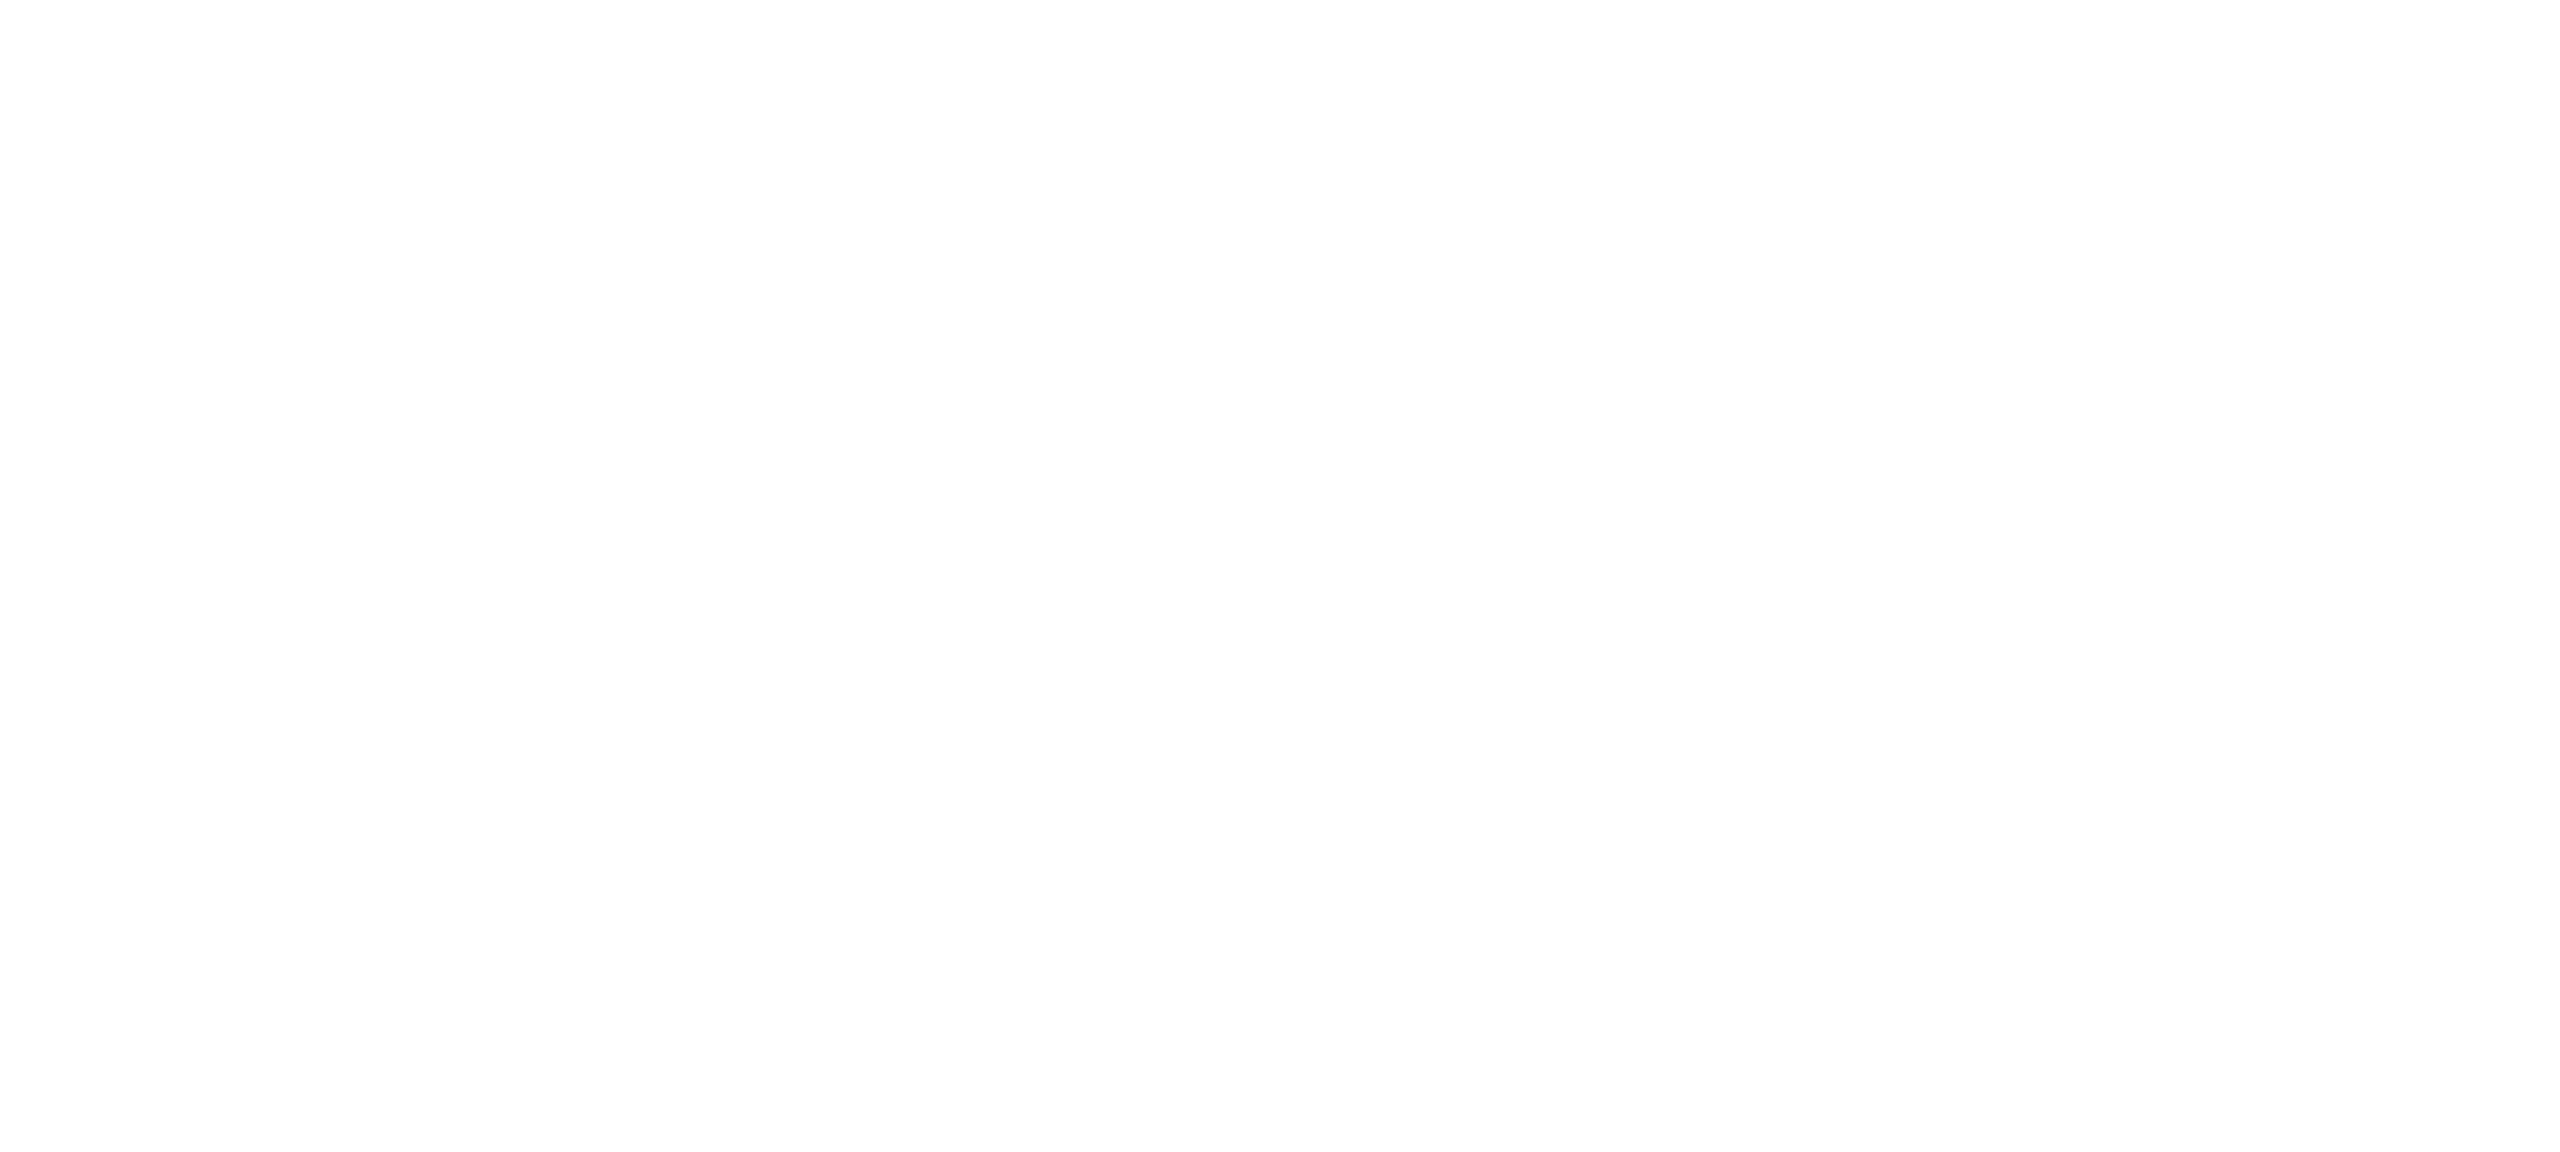 Schmit Towing